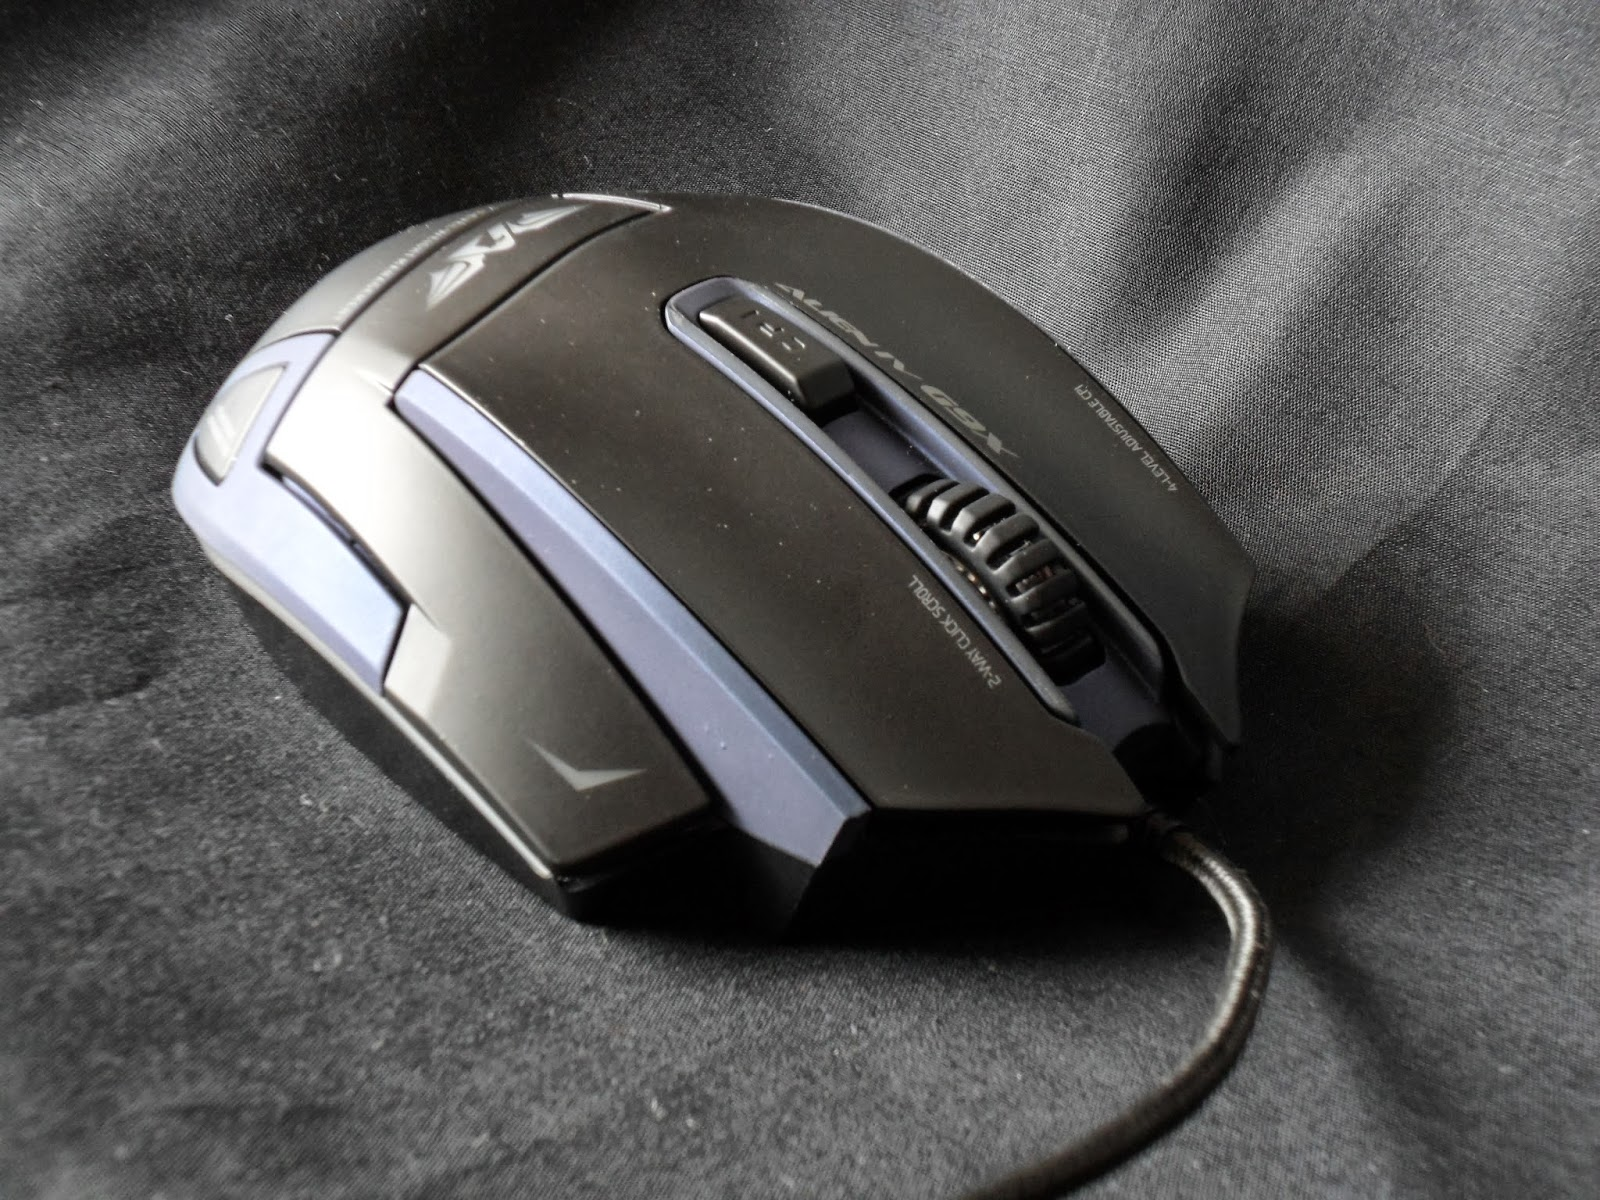 First Look & Review - Armaggeddon Alien IV G9X Optical Gaming Mouse 29